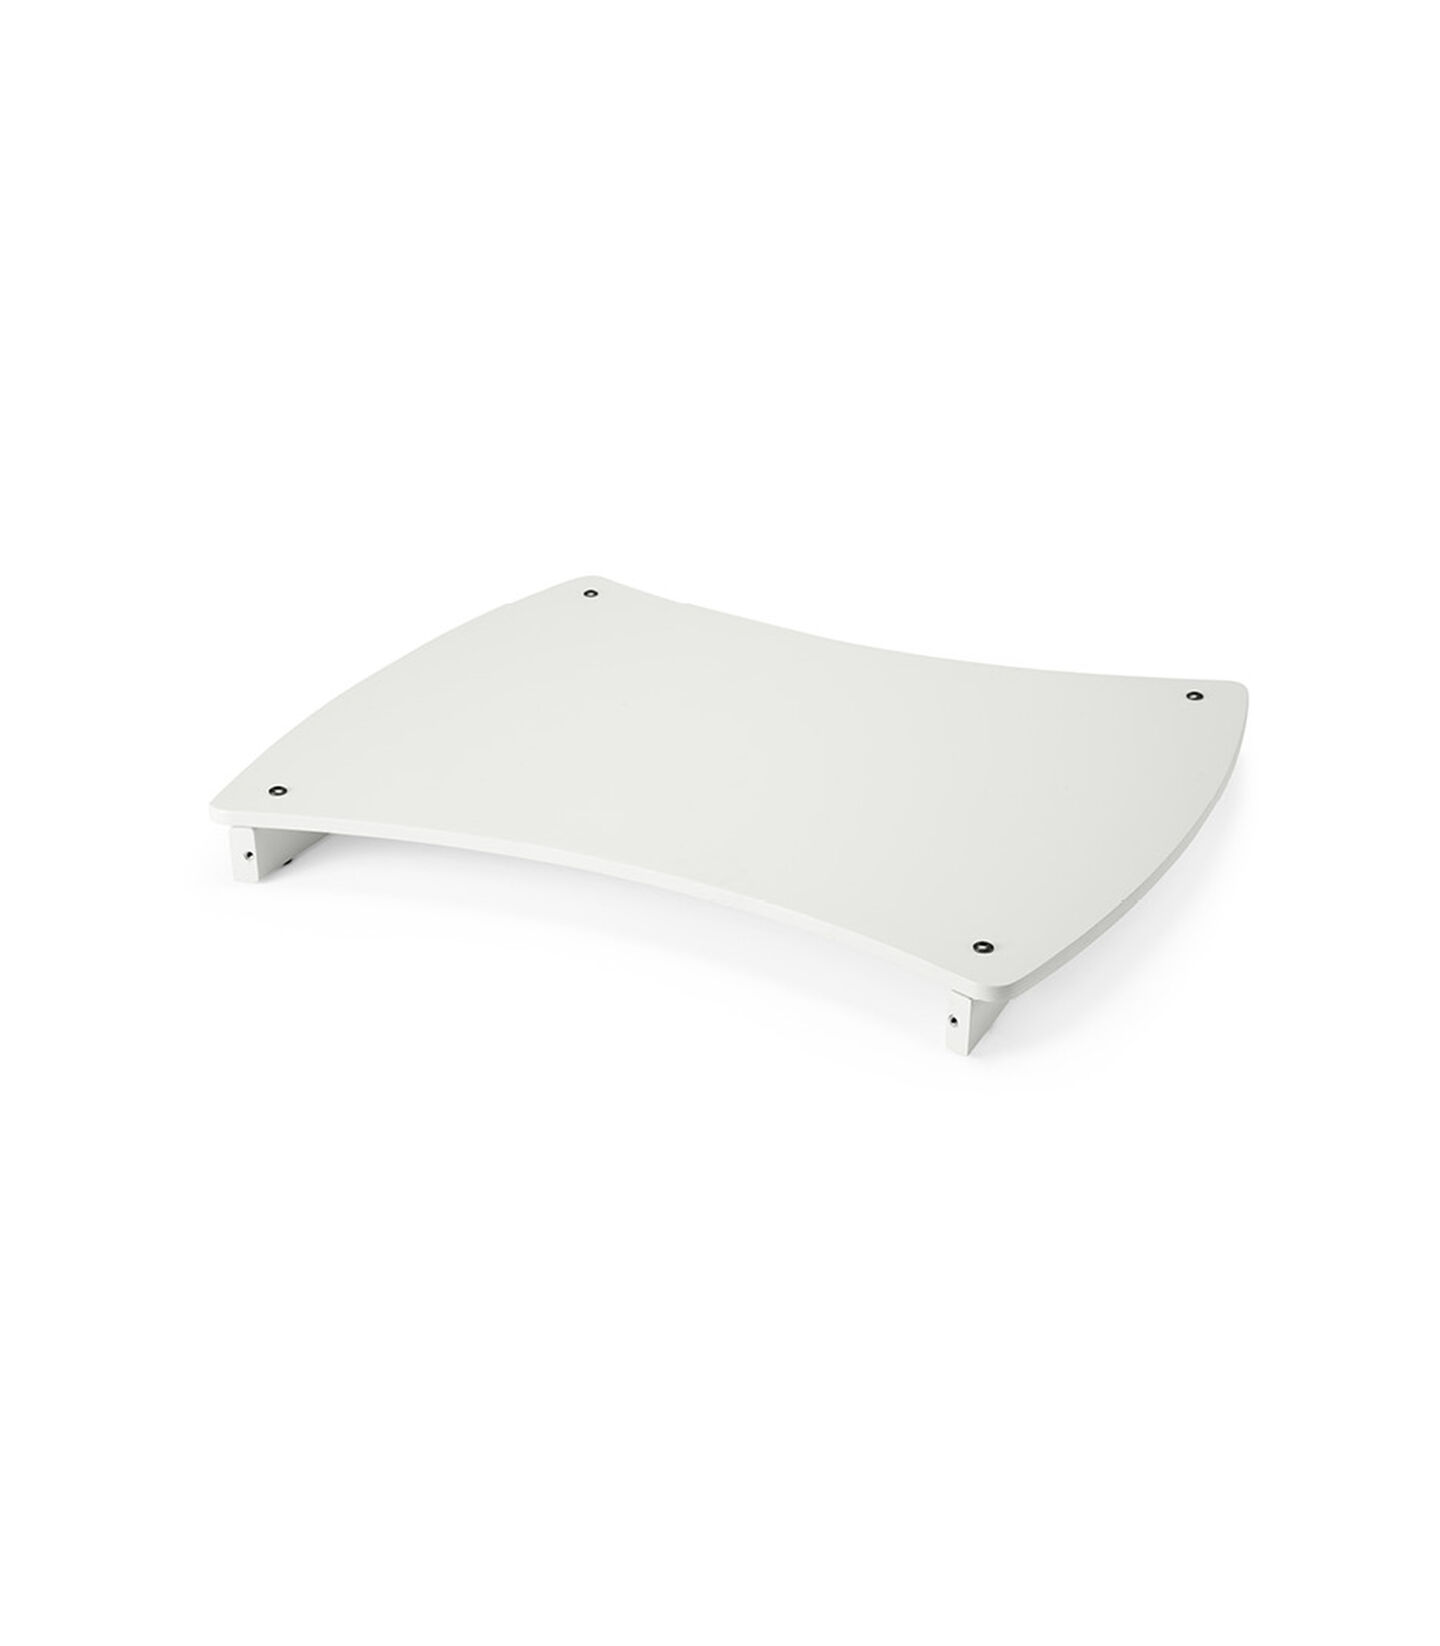 Stokke® Care™ Spare part. 164504 Care 09 Topshelf Cpl White. view 2